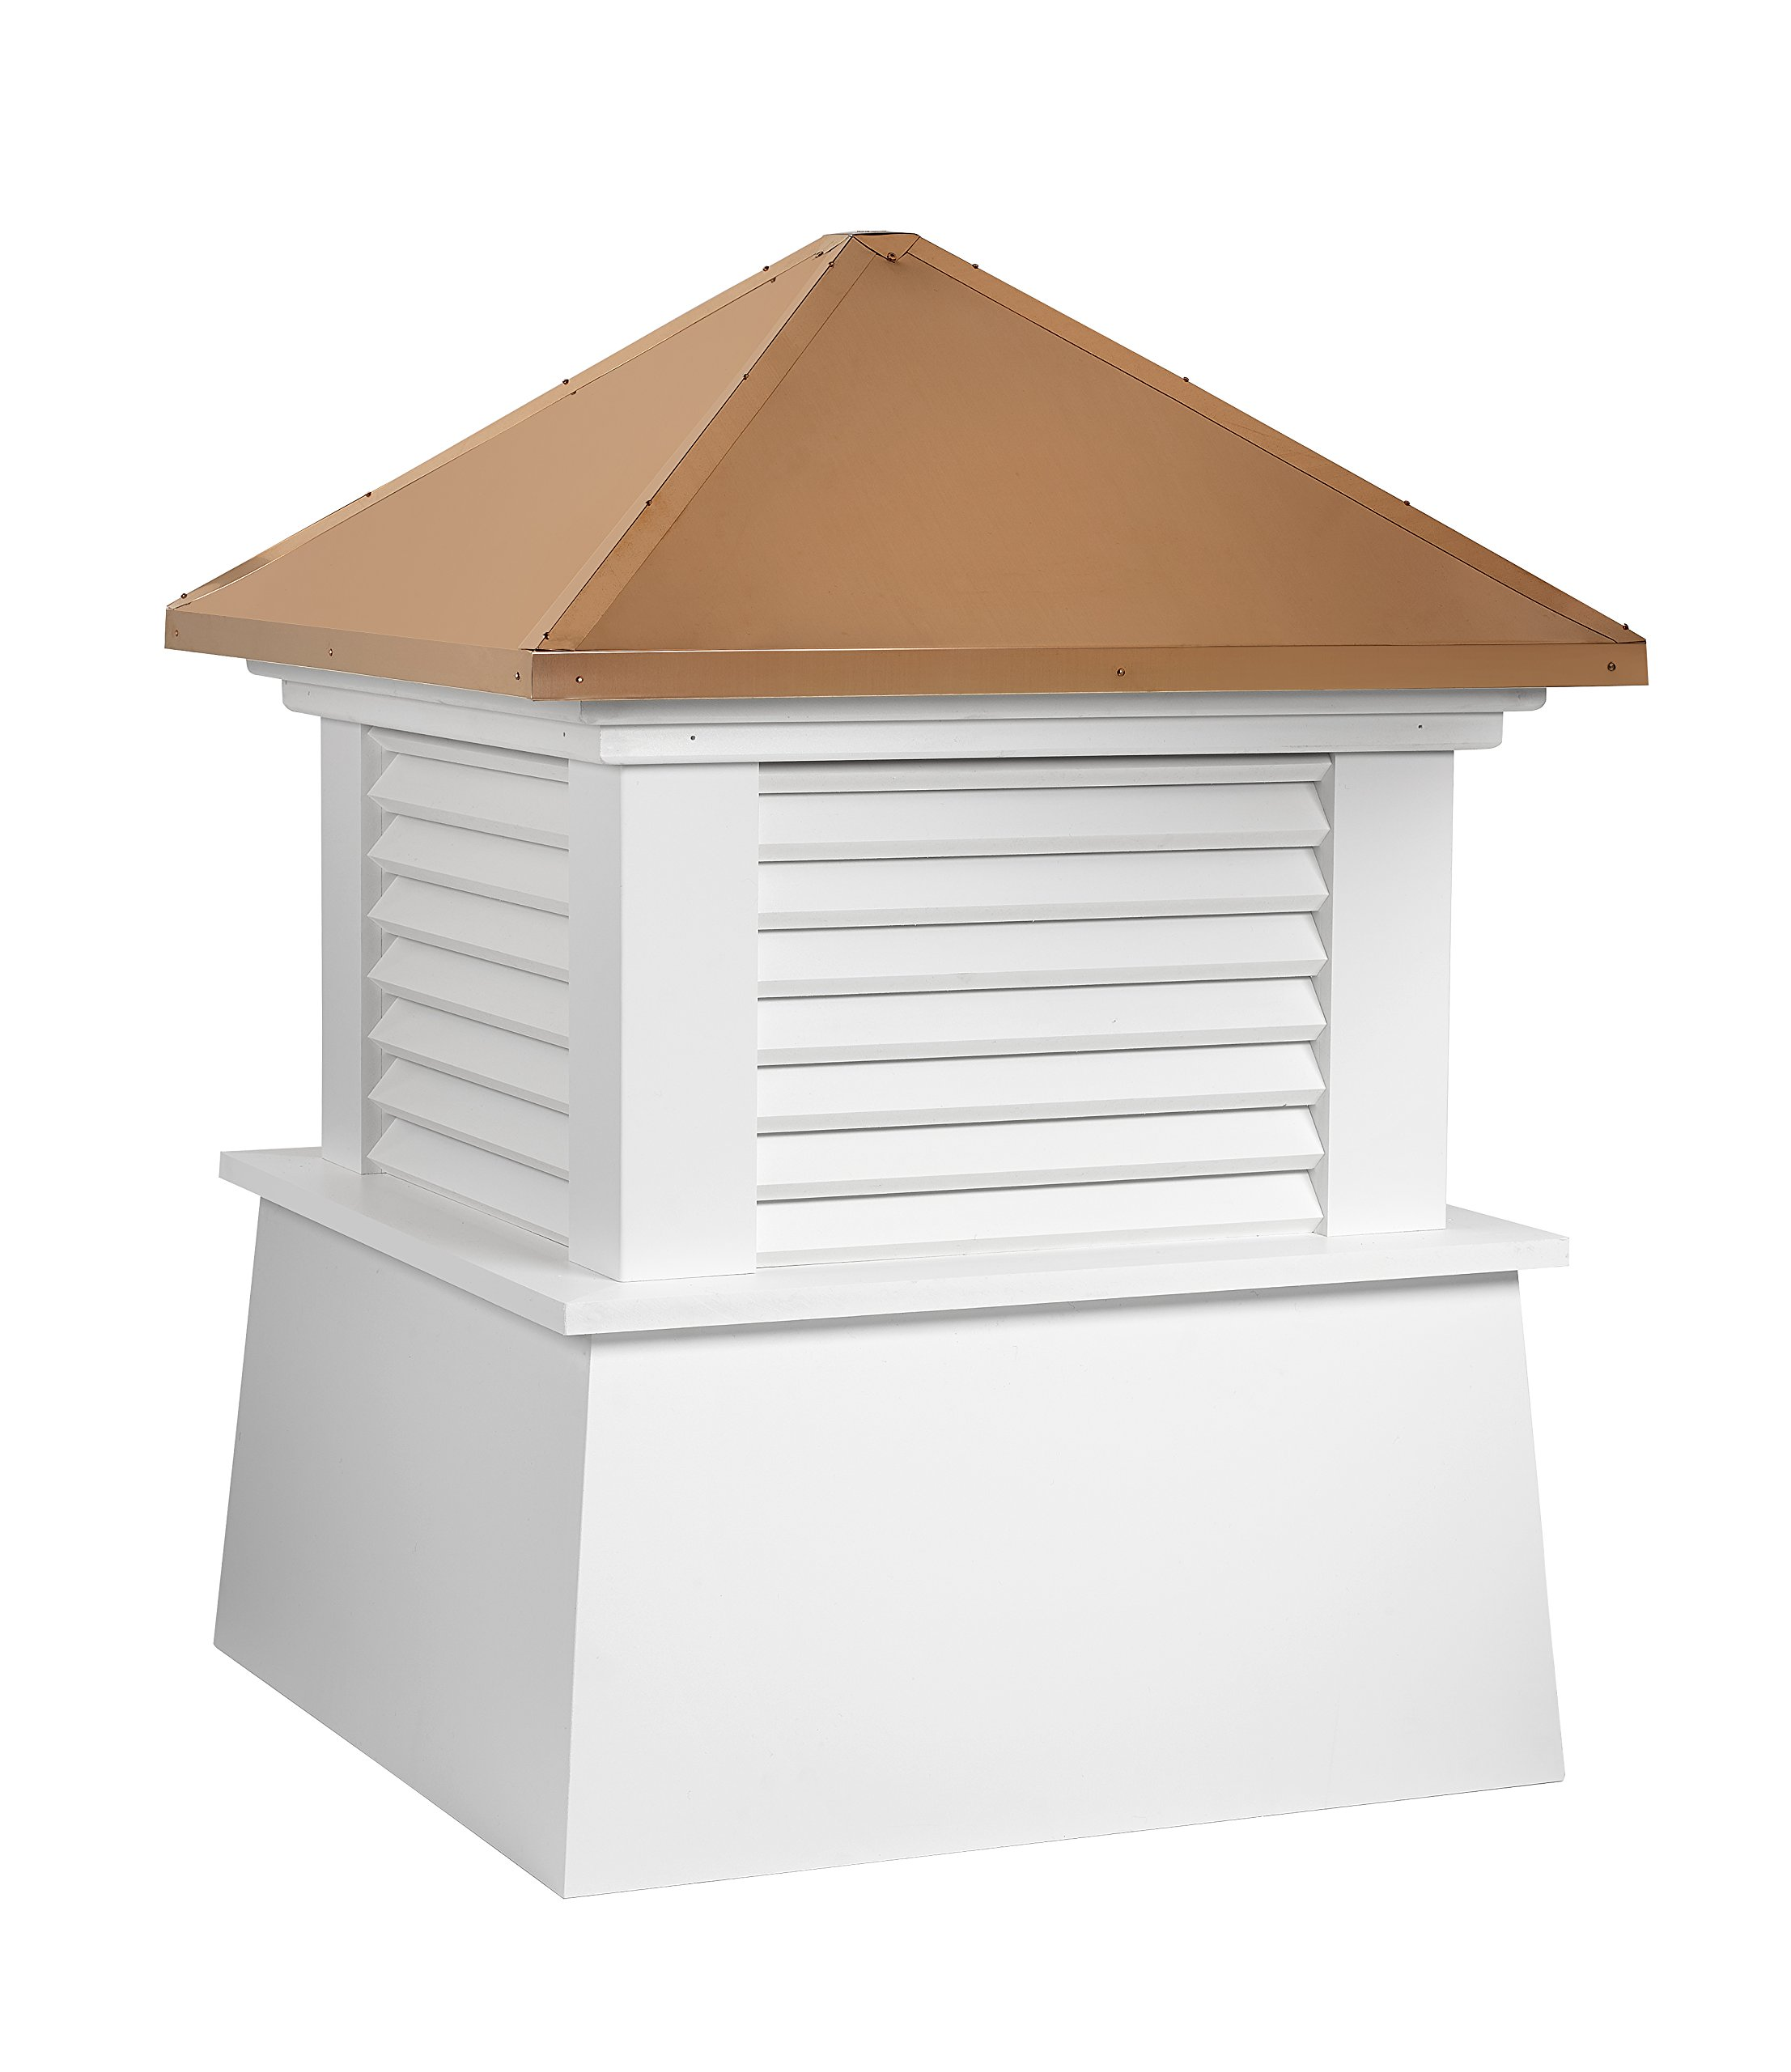 Good Directions Vinyl Manchester Louvered Cupola with Pure Copper Roof,  Maintenance Free Solid Cellular PVC Vinyl, 42'' x 54'', Reinforced Roof and Louvers, Cupolas